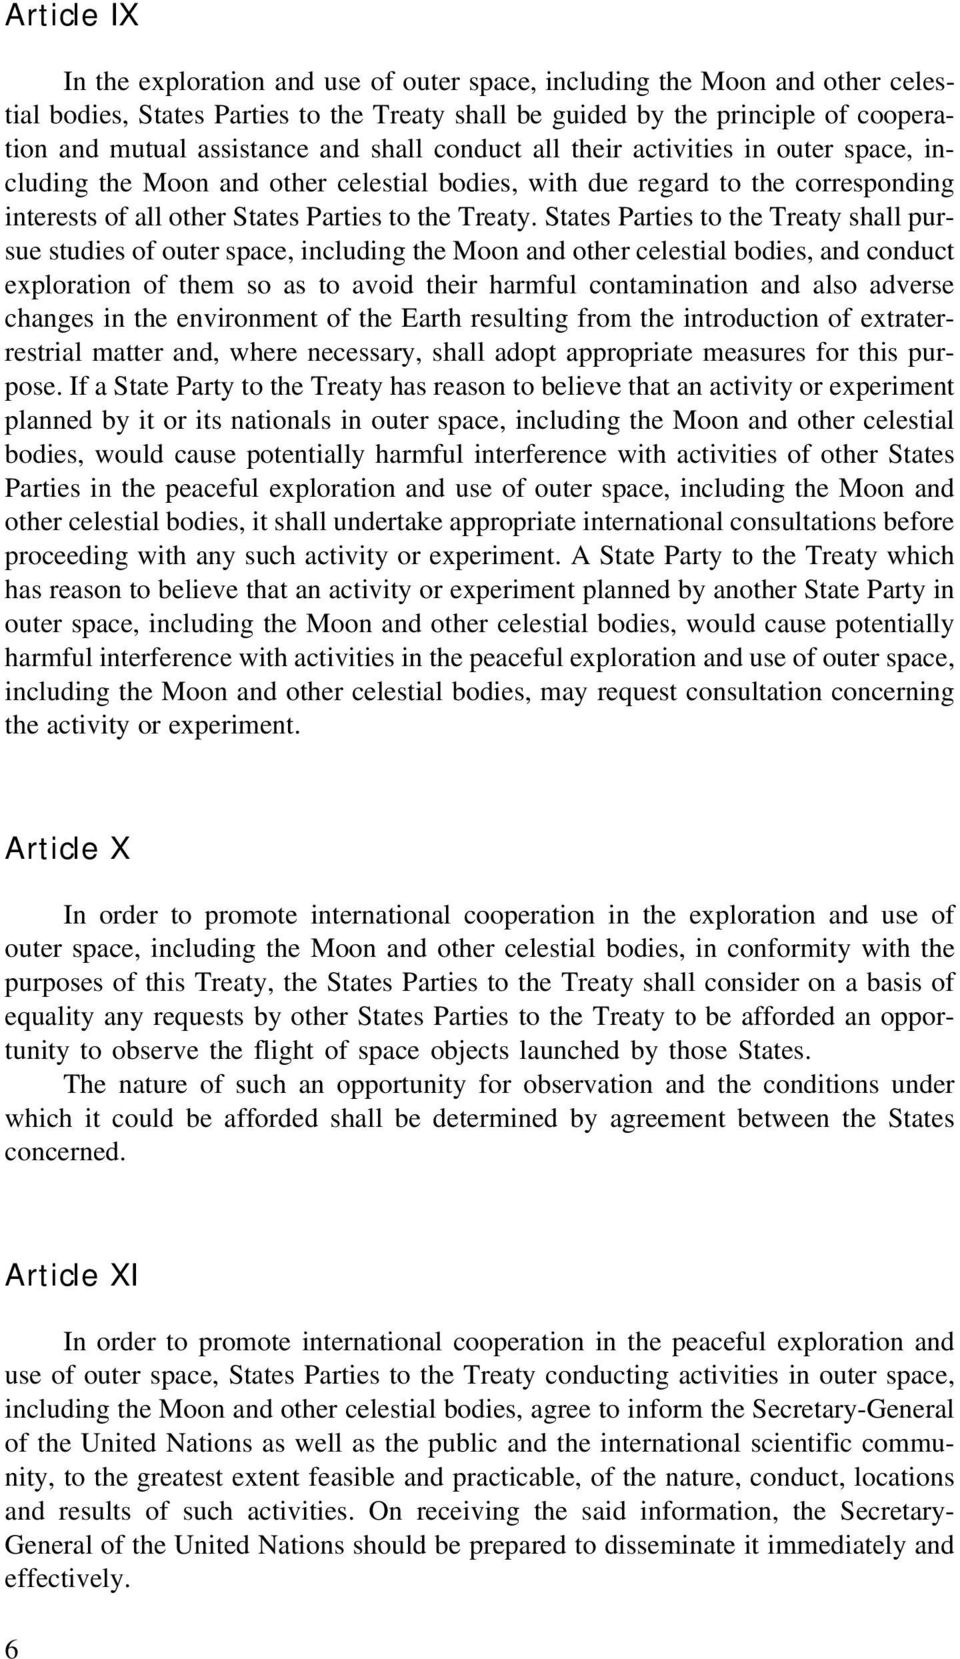 States Parties to the Treaty shall pursue studies of outer space, including the Moon and other celestial bodies, and conduct exploration of them so as to avoid their harmful contamination and also